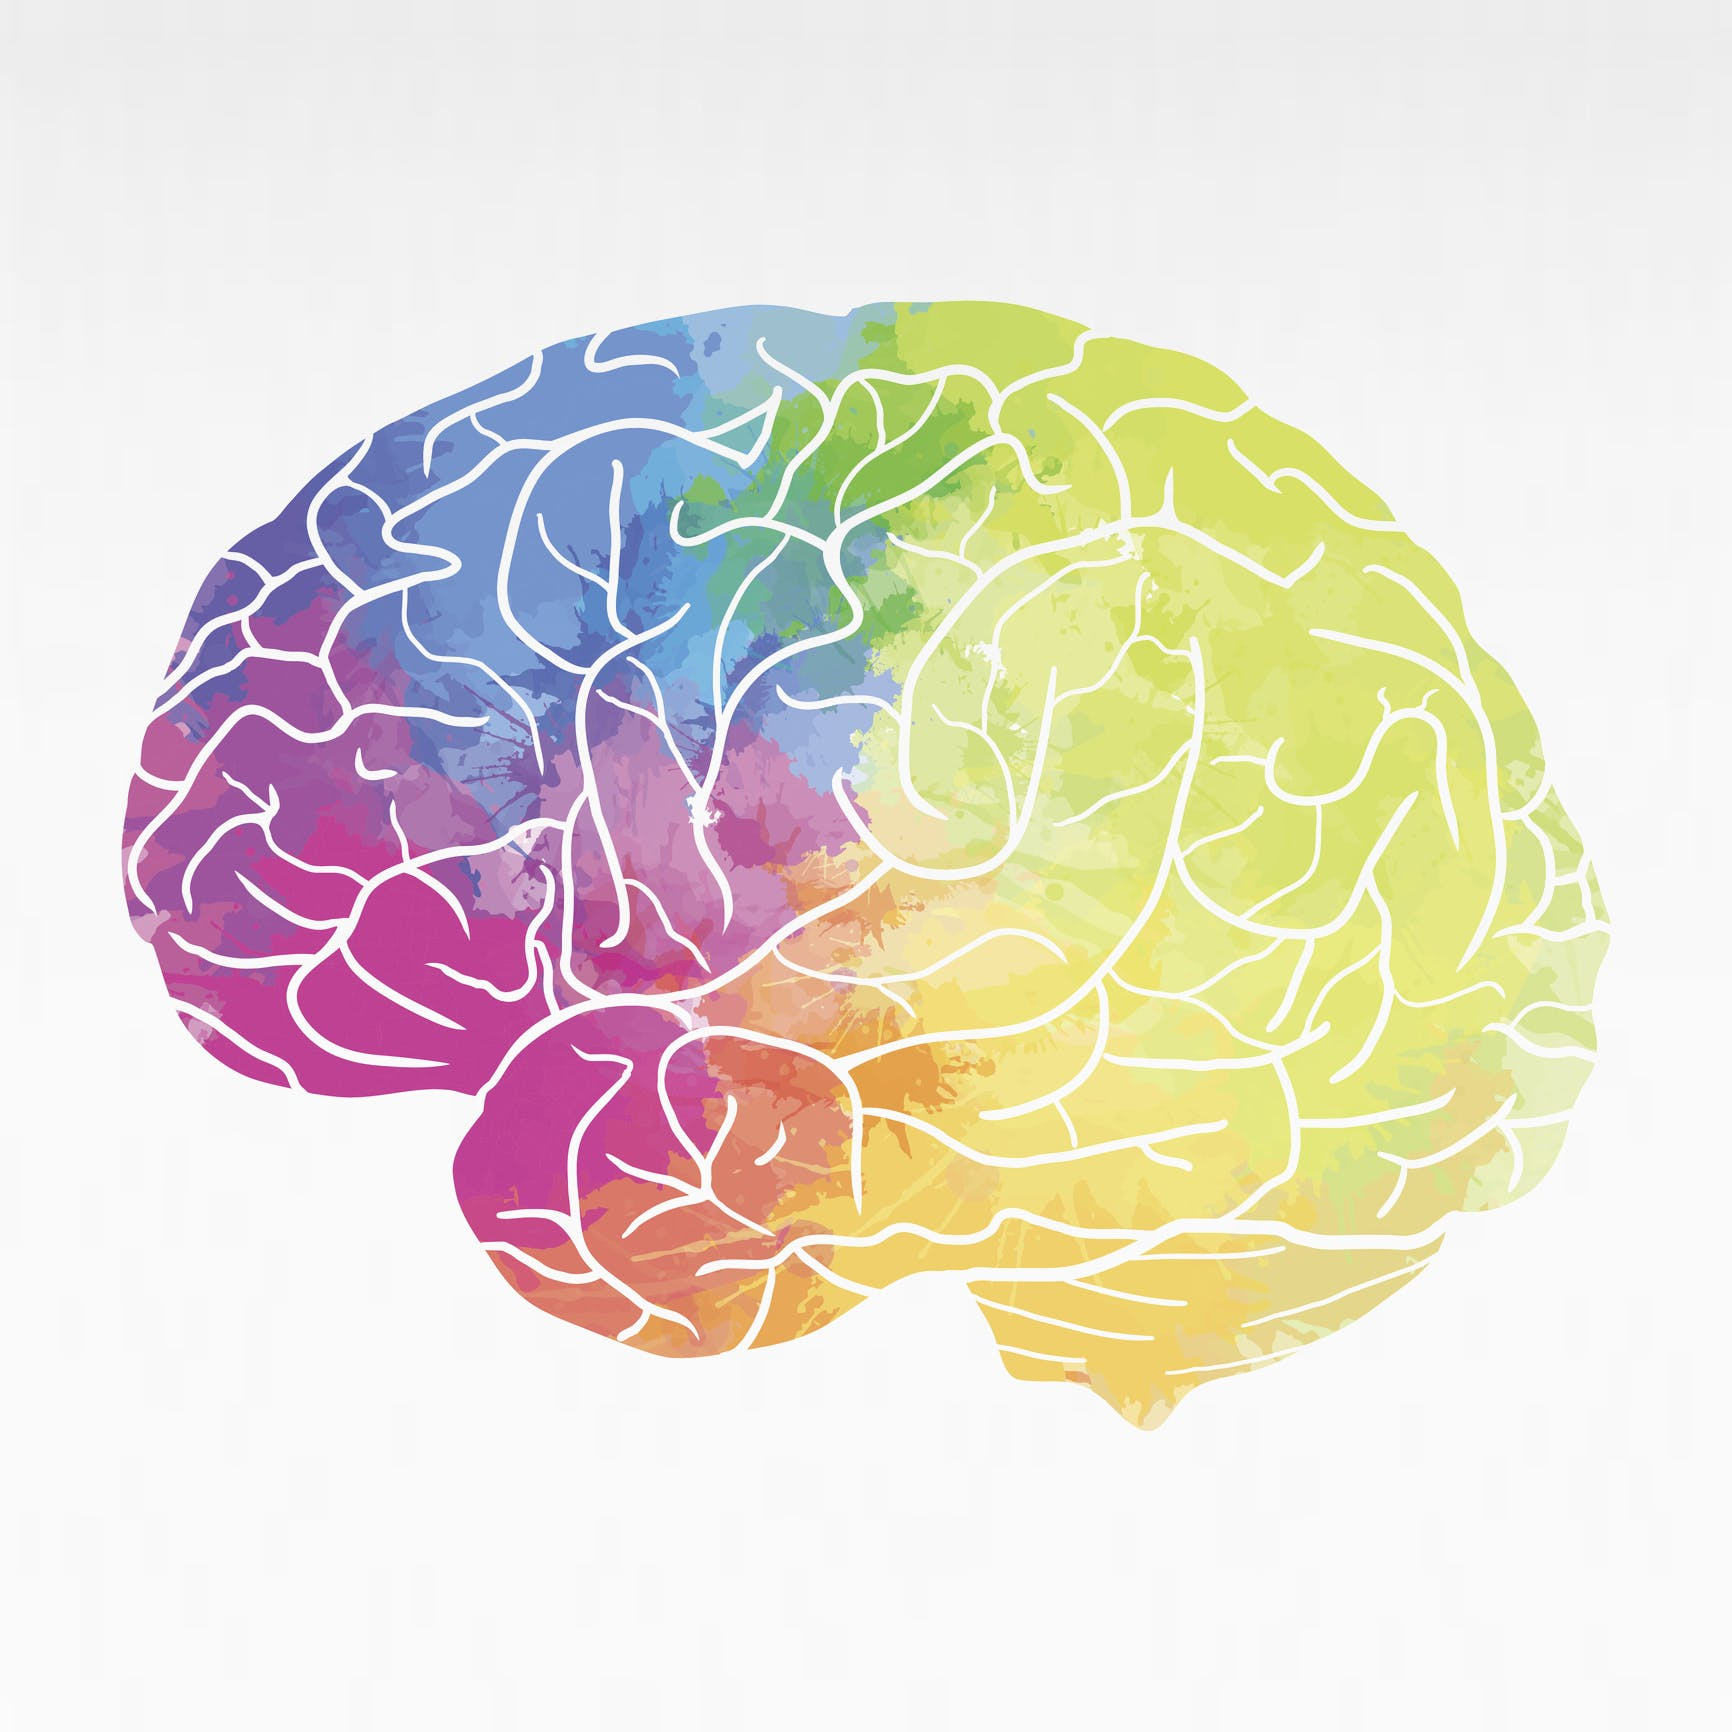 Human brain with rainbow watercolor spray on a white background